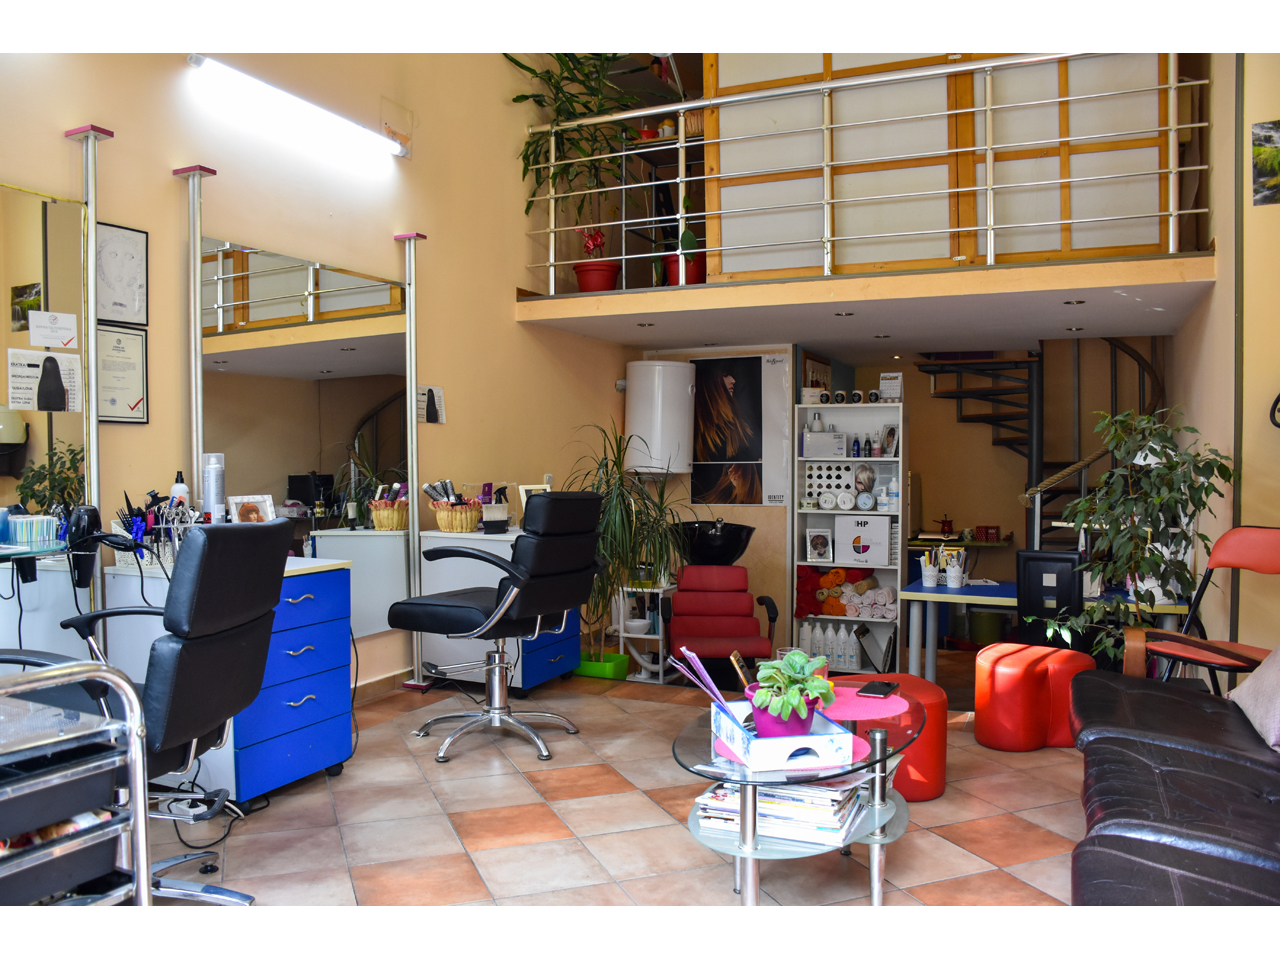 HAIR BEAUTY SALON FRIK 1 Hairdressers Beograd